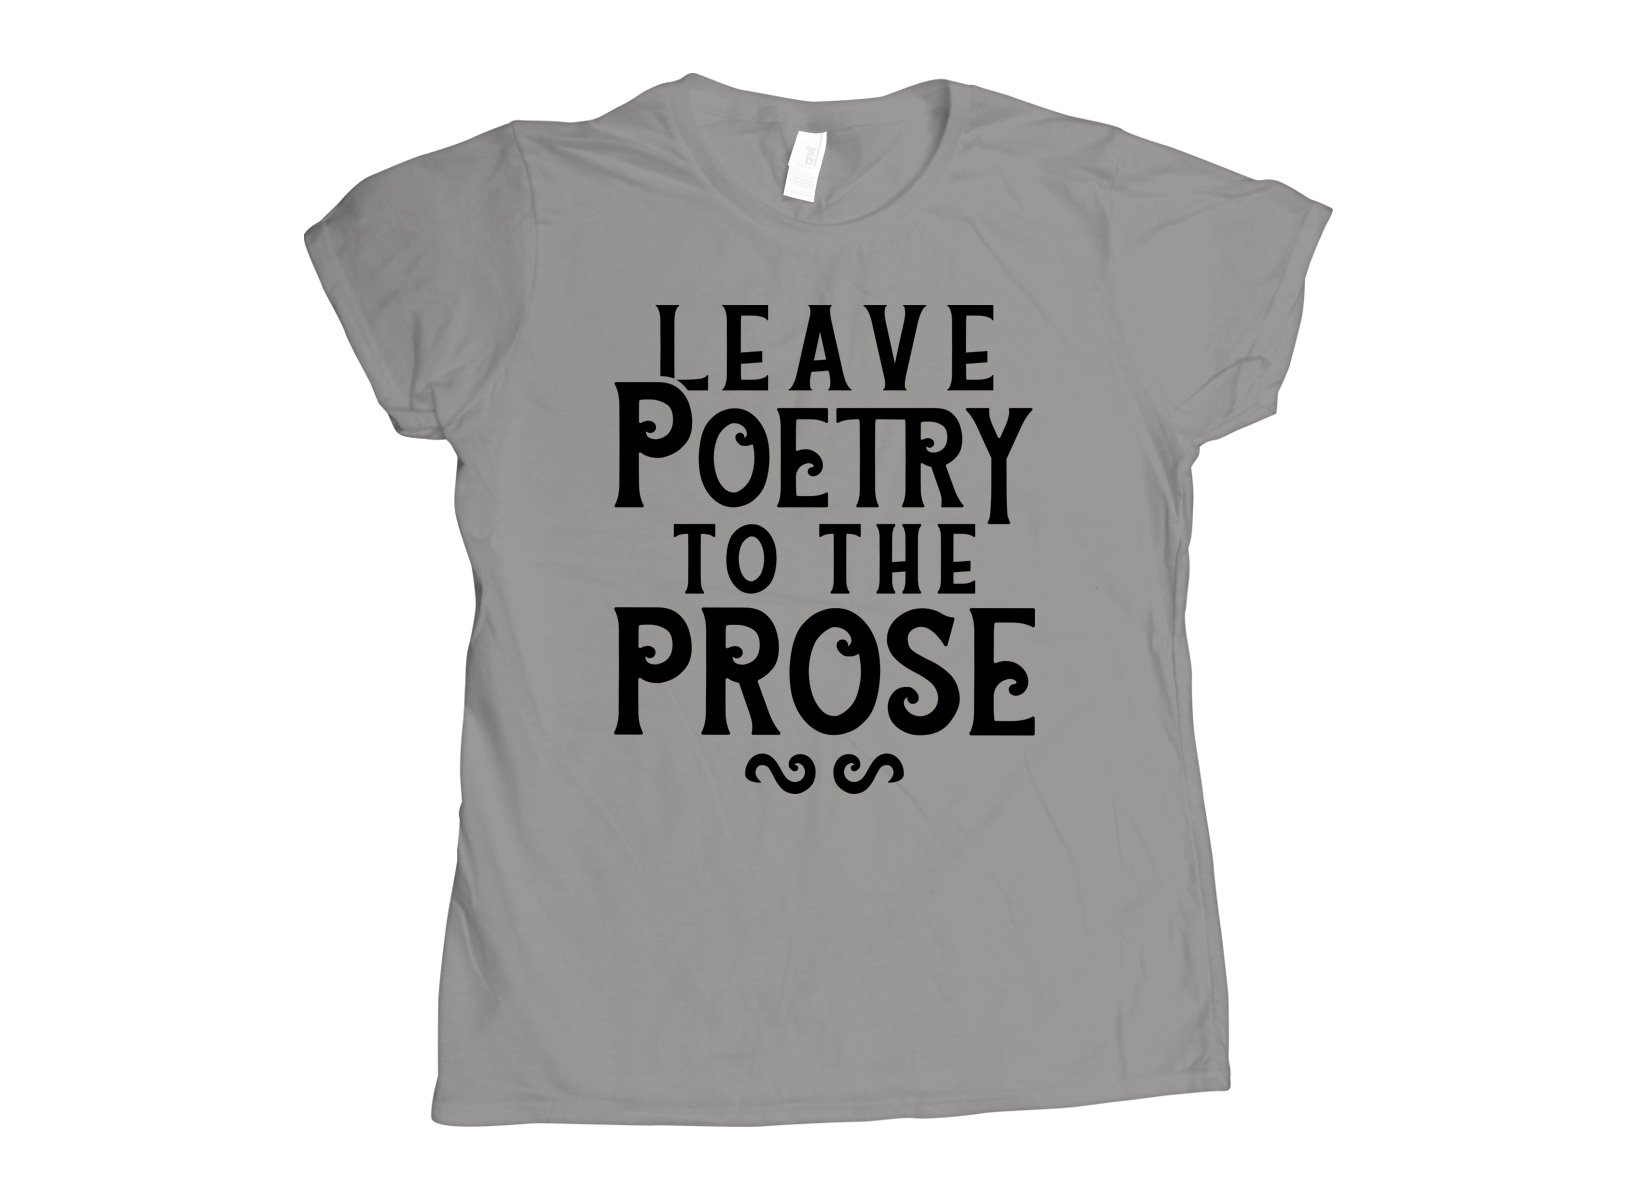 Leave Poetry To The Prose on Womens T-Shirt